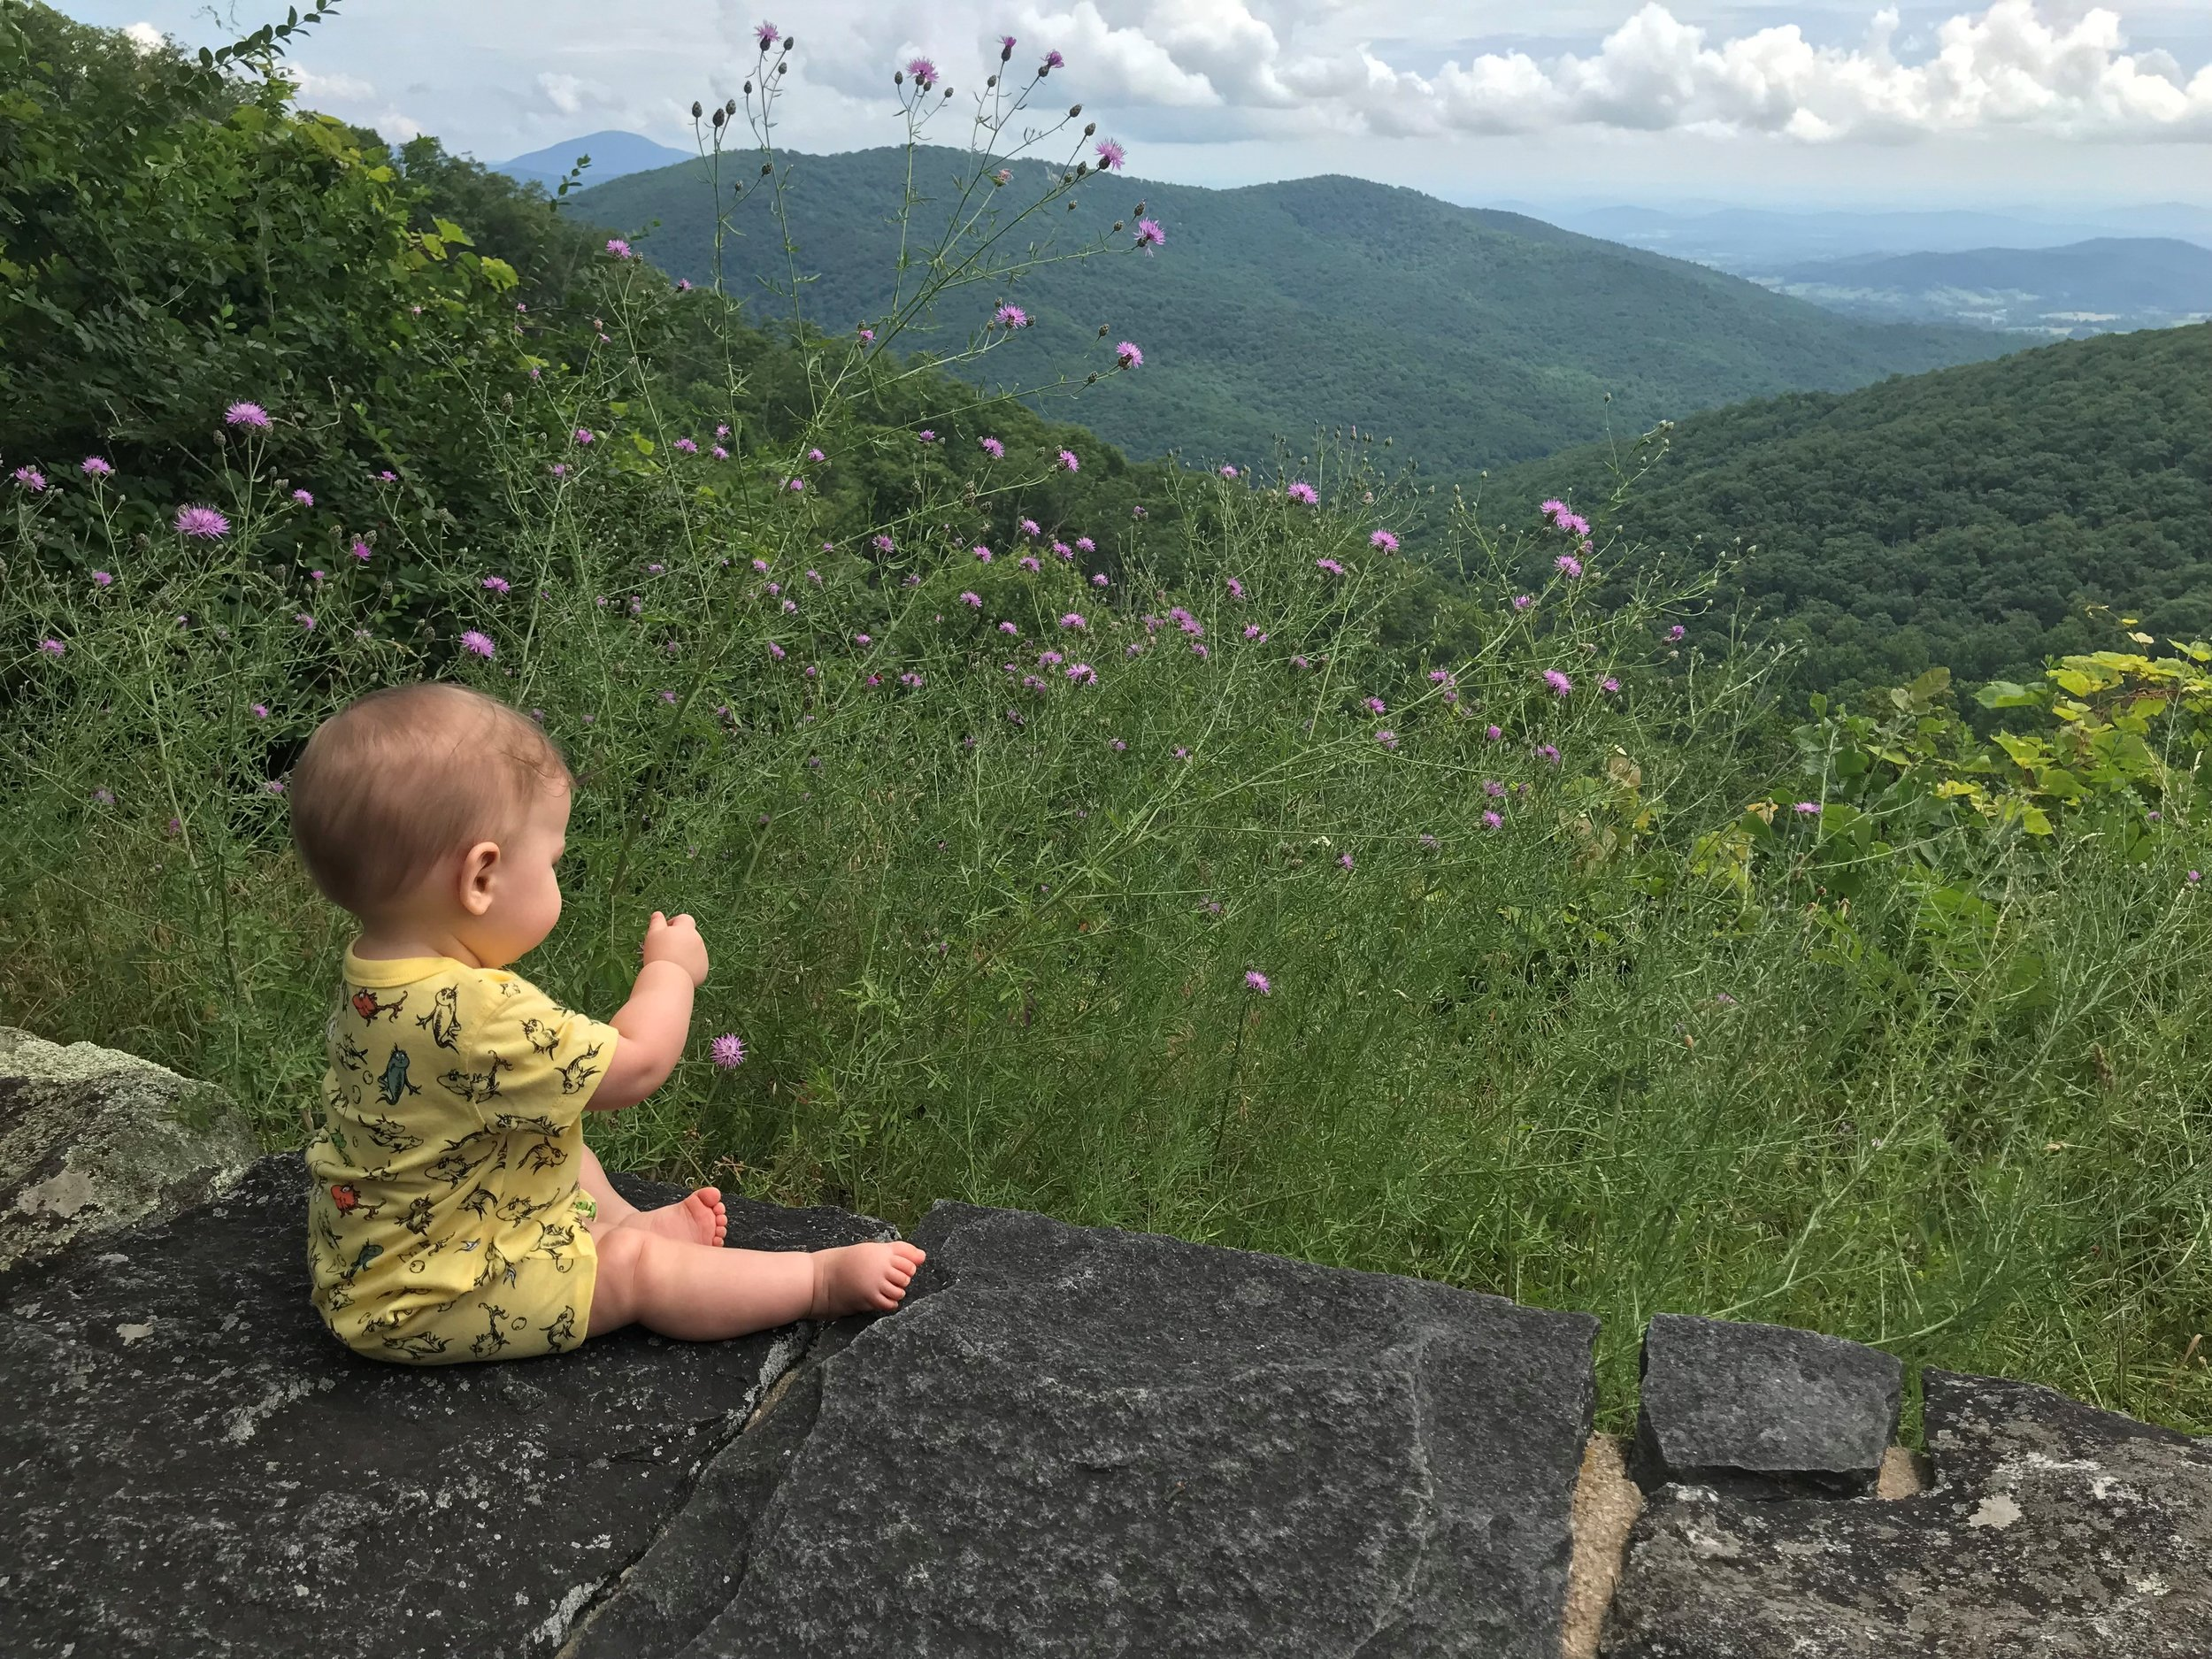 Our new baby enjoying vacation in Virginia